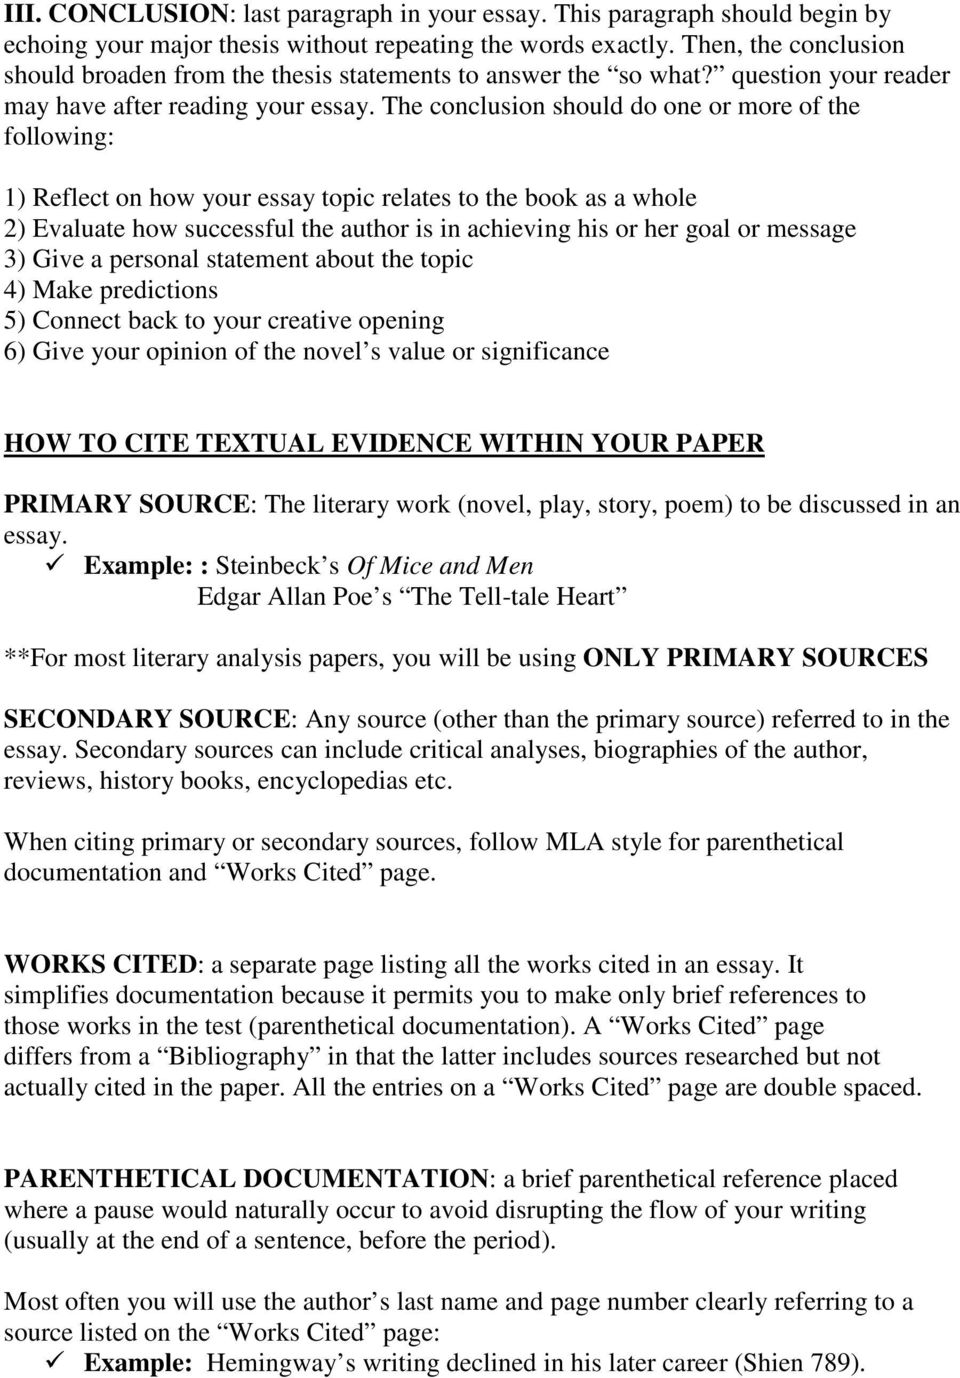 A Guide To Writing The Literary Analysis Essay PDF Free